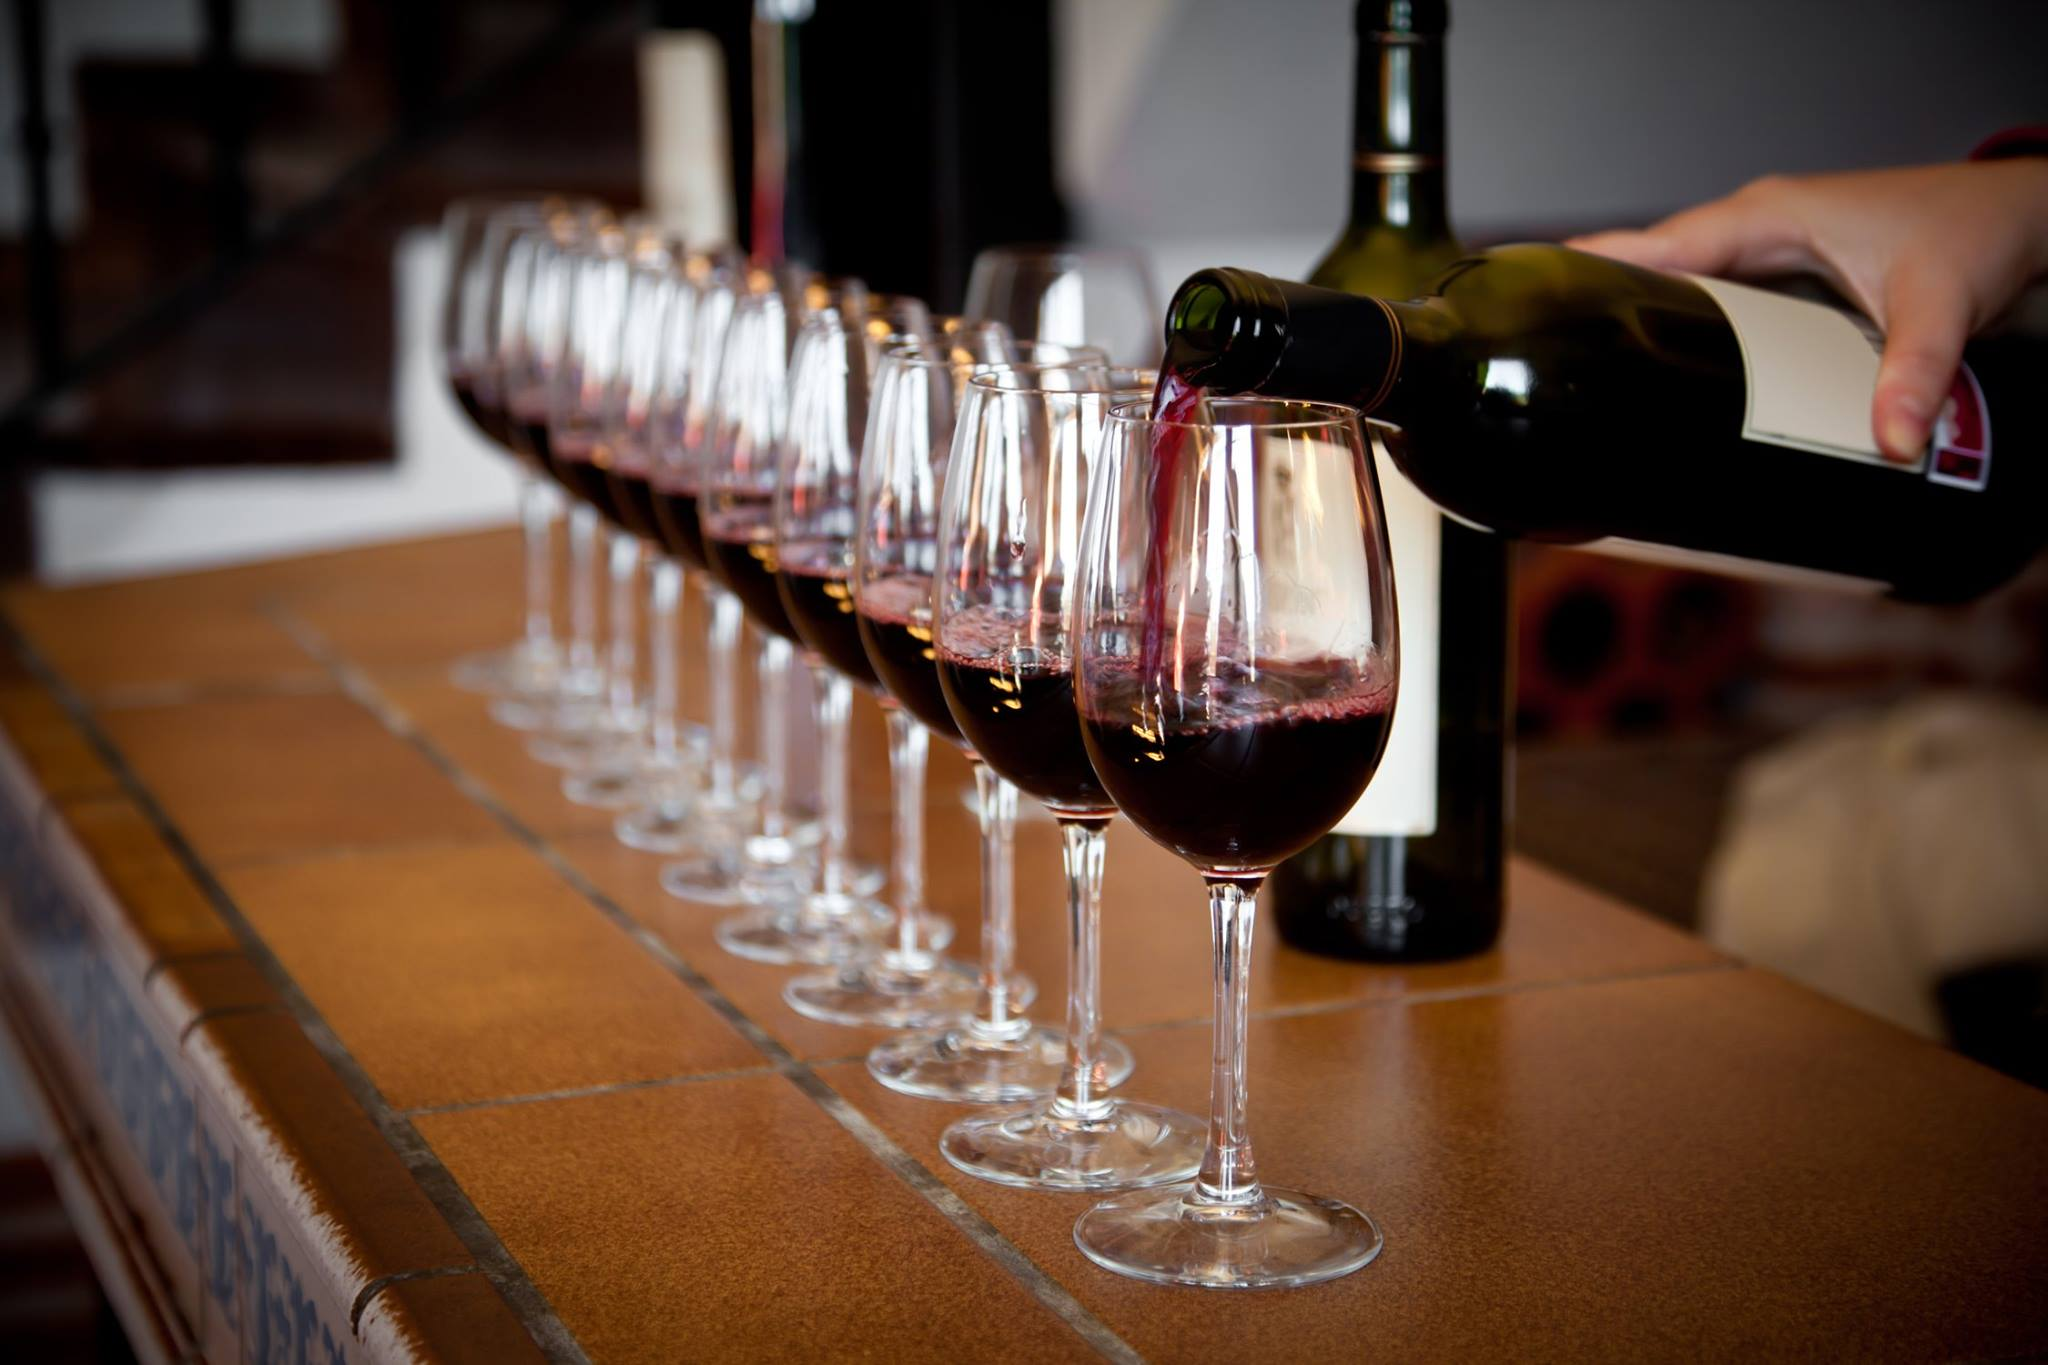 glasses filled with red wine lined up on counter